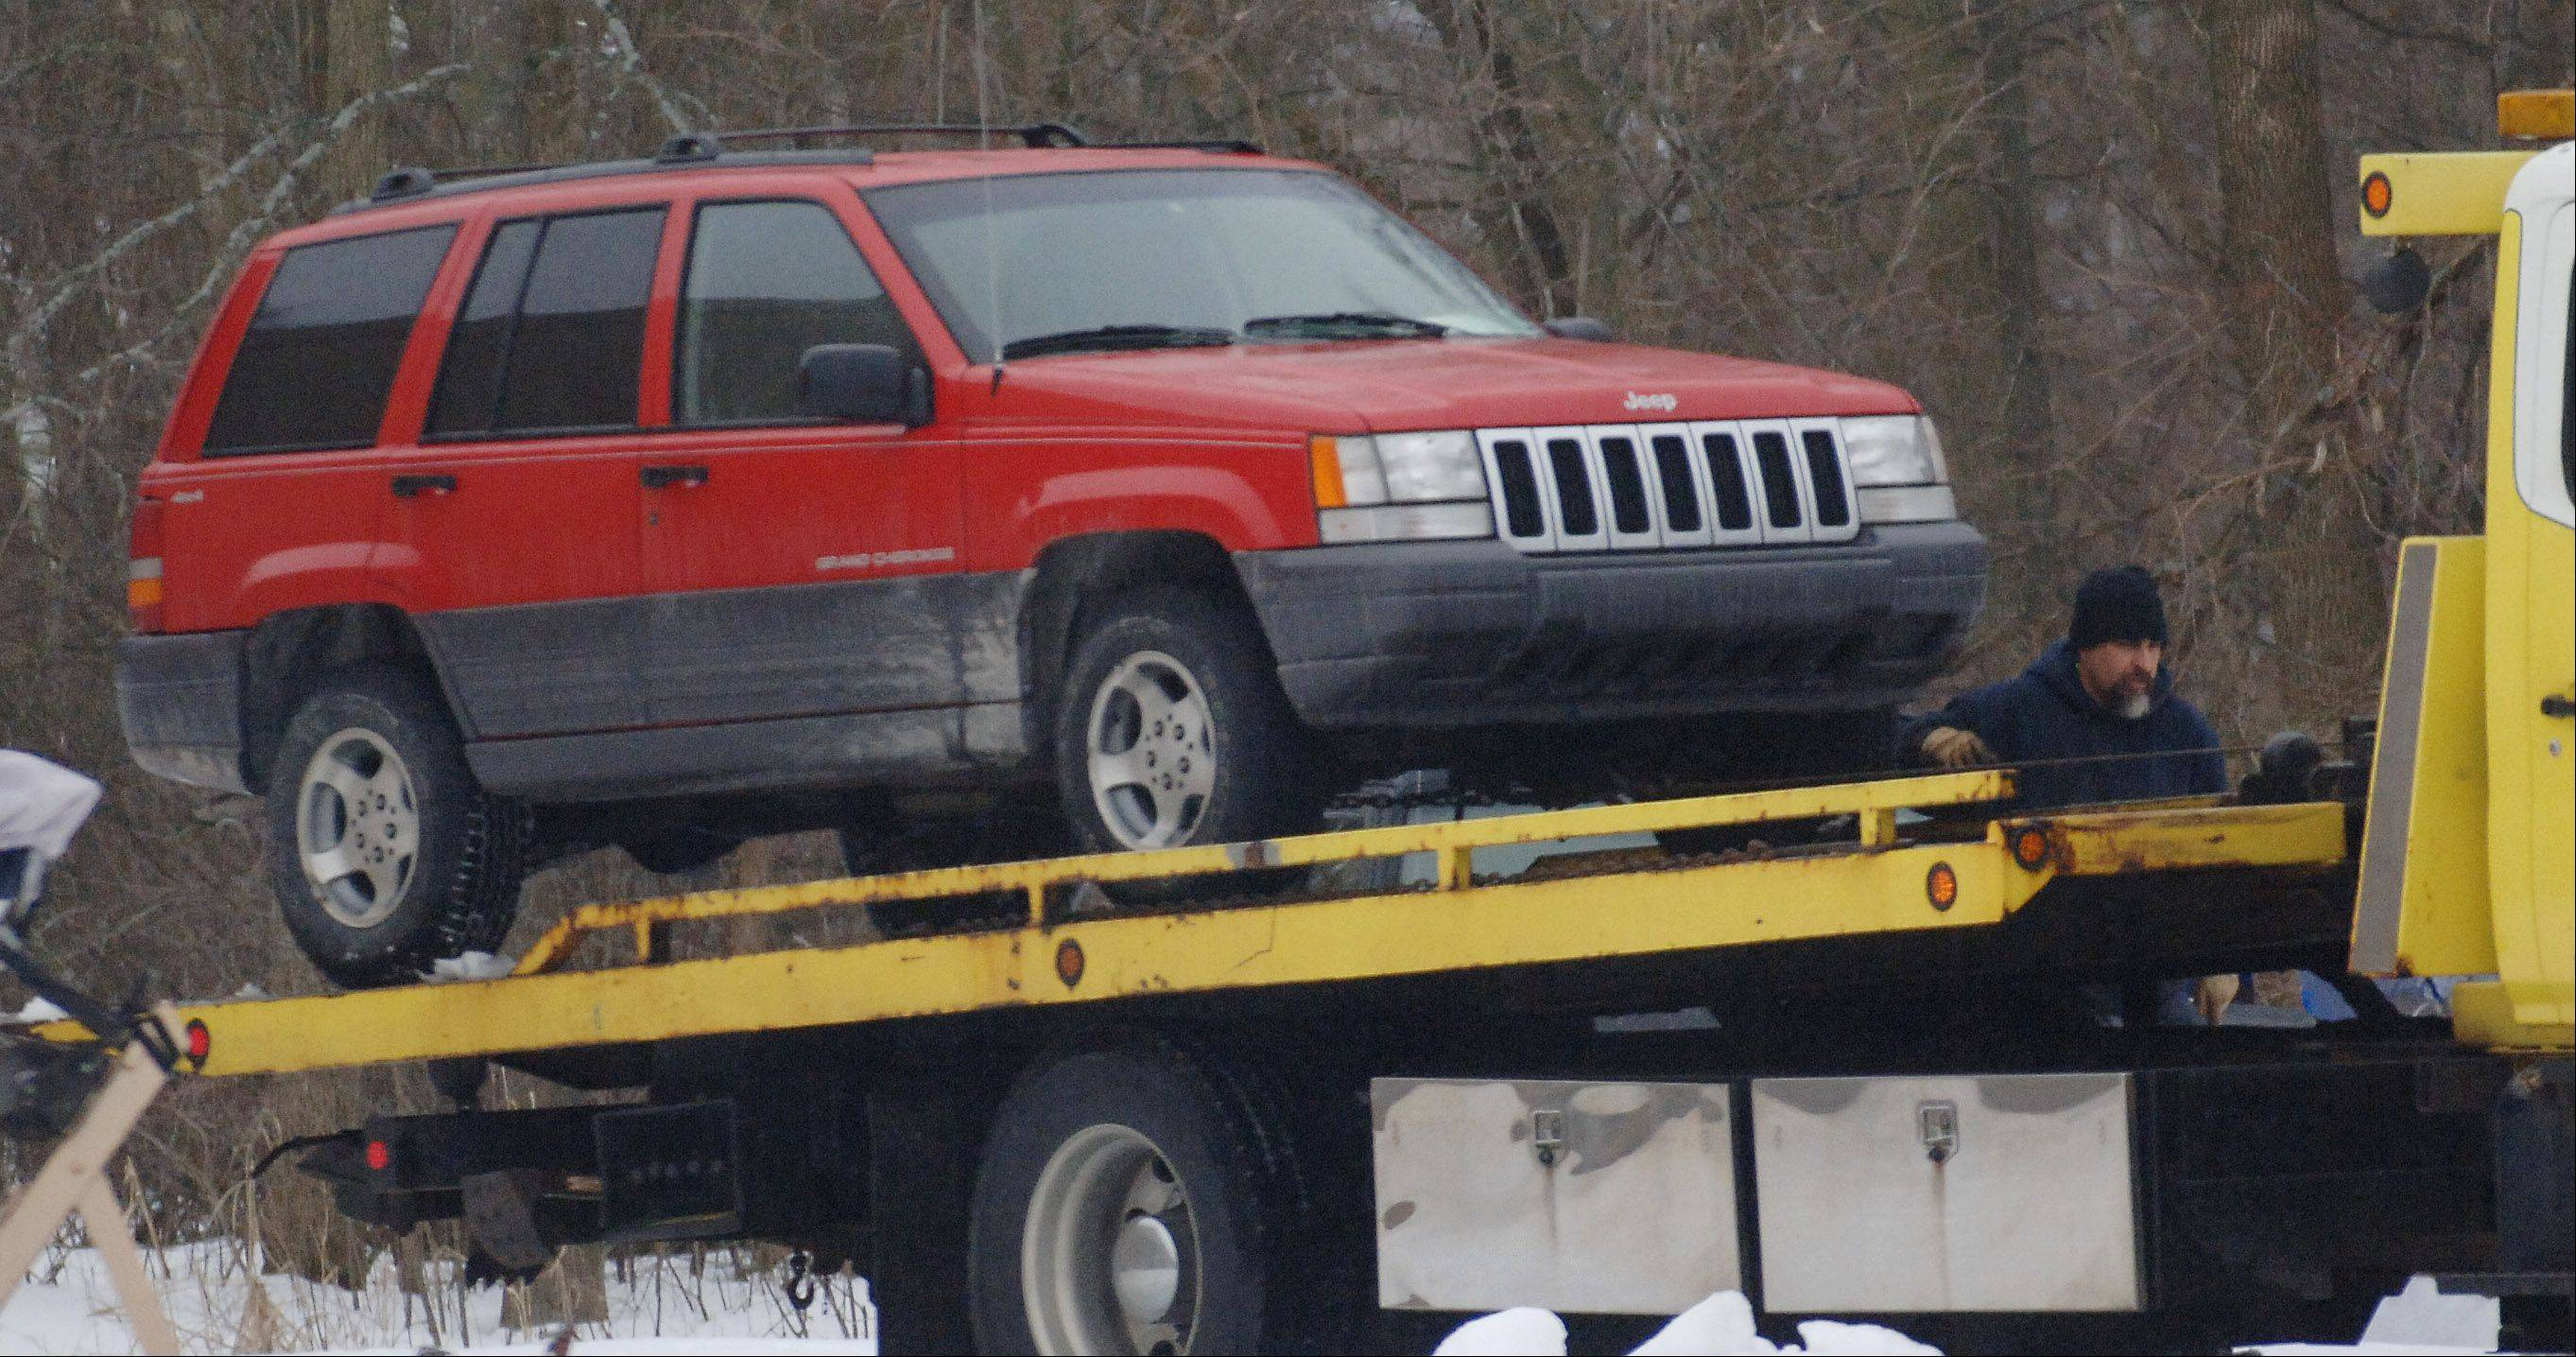 The vehicle owned by murder suspect Paul Neff is towed away. A suicide note was found inside.